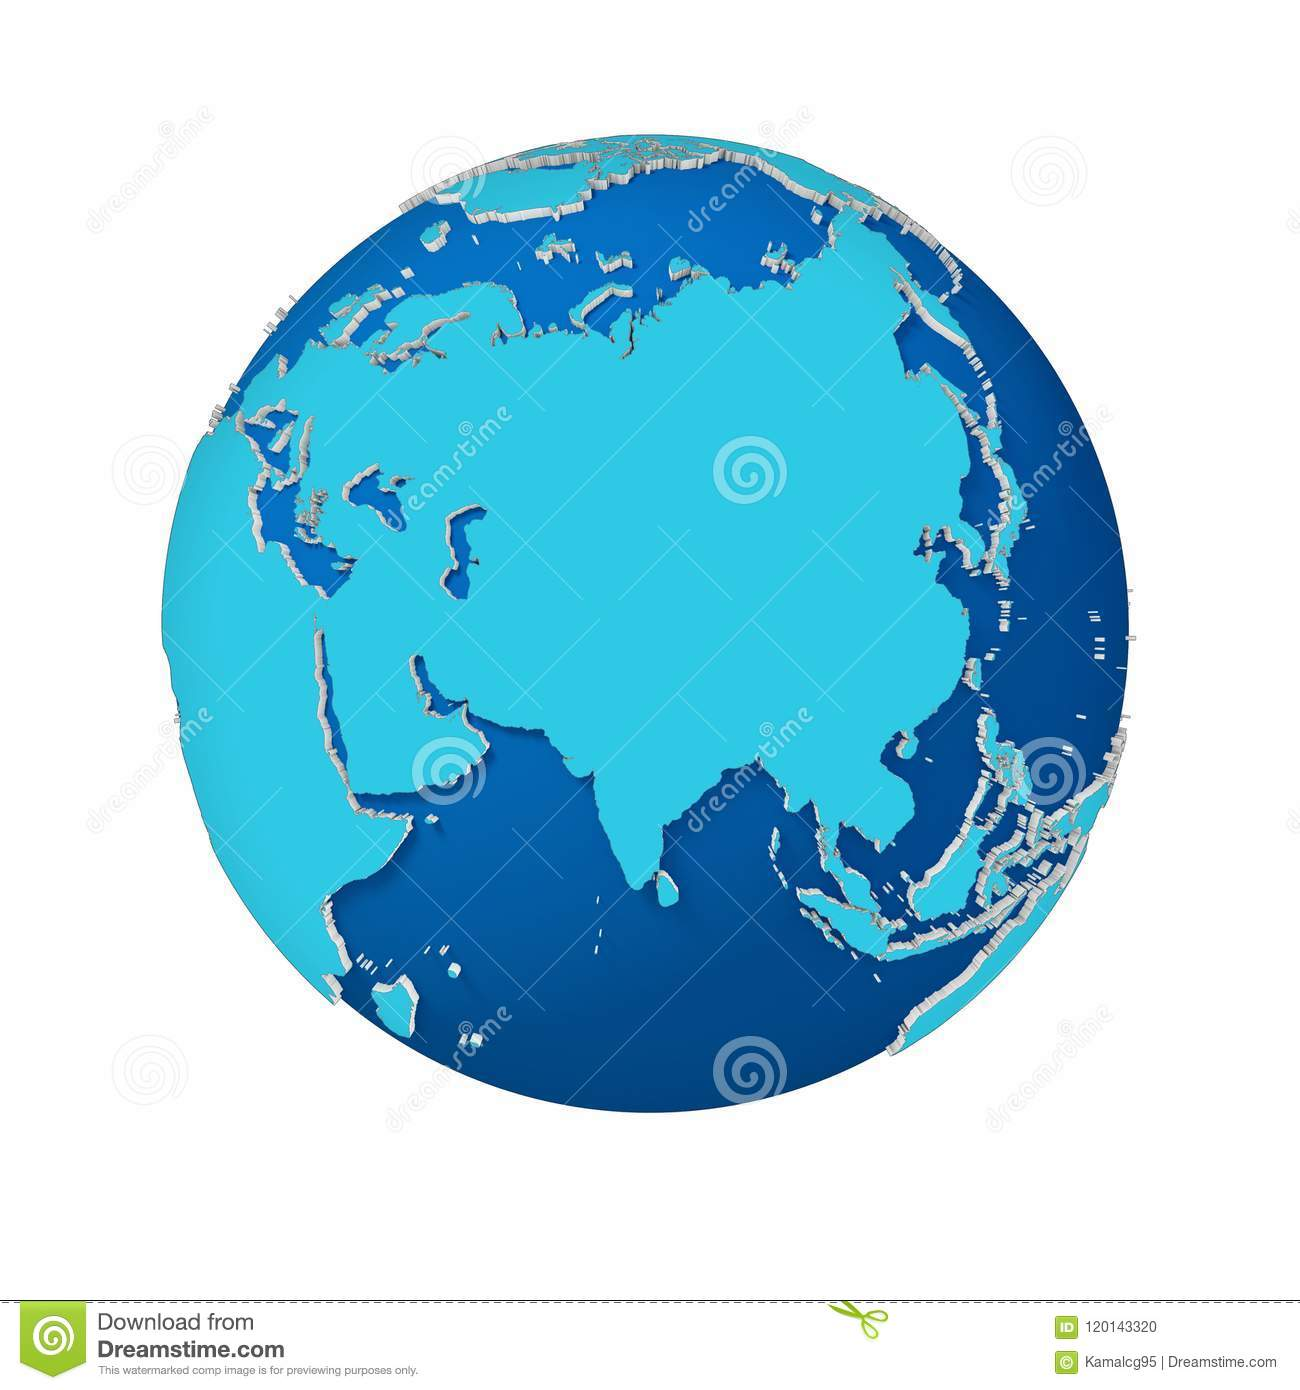 World Map 3d View.Abstract 3d Earth Isolated View Asia Stock Illustration